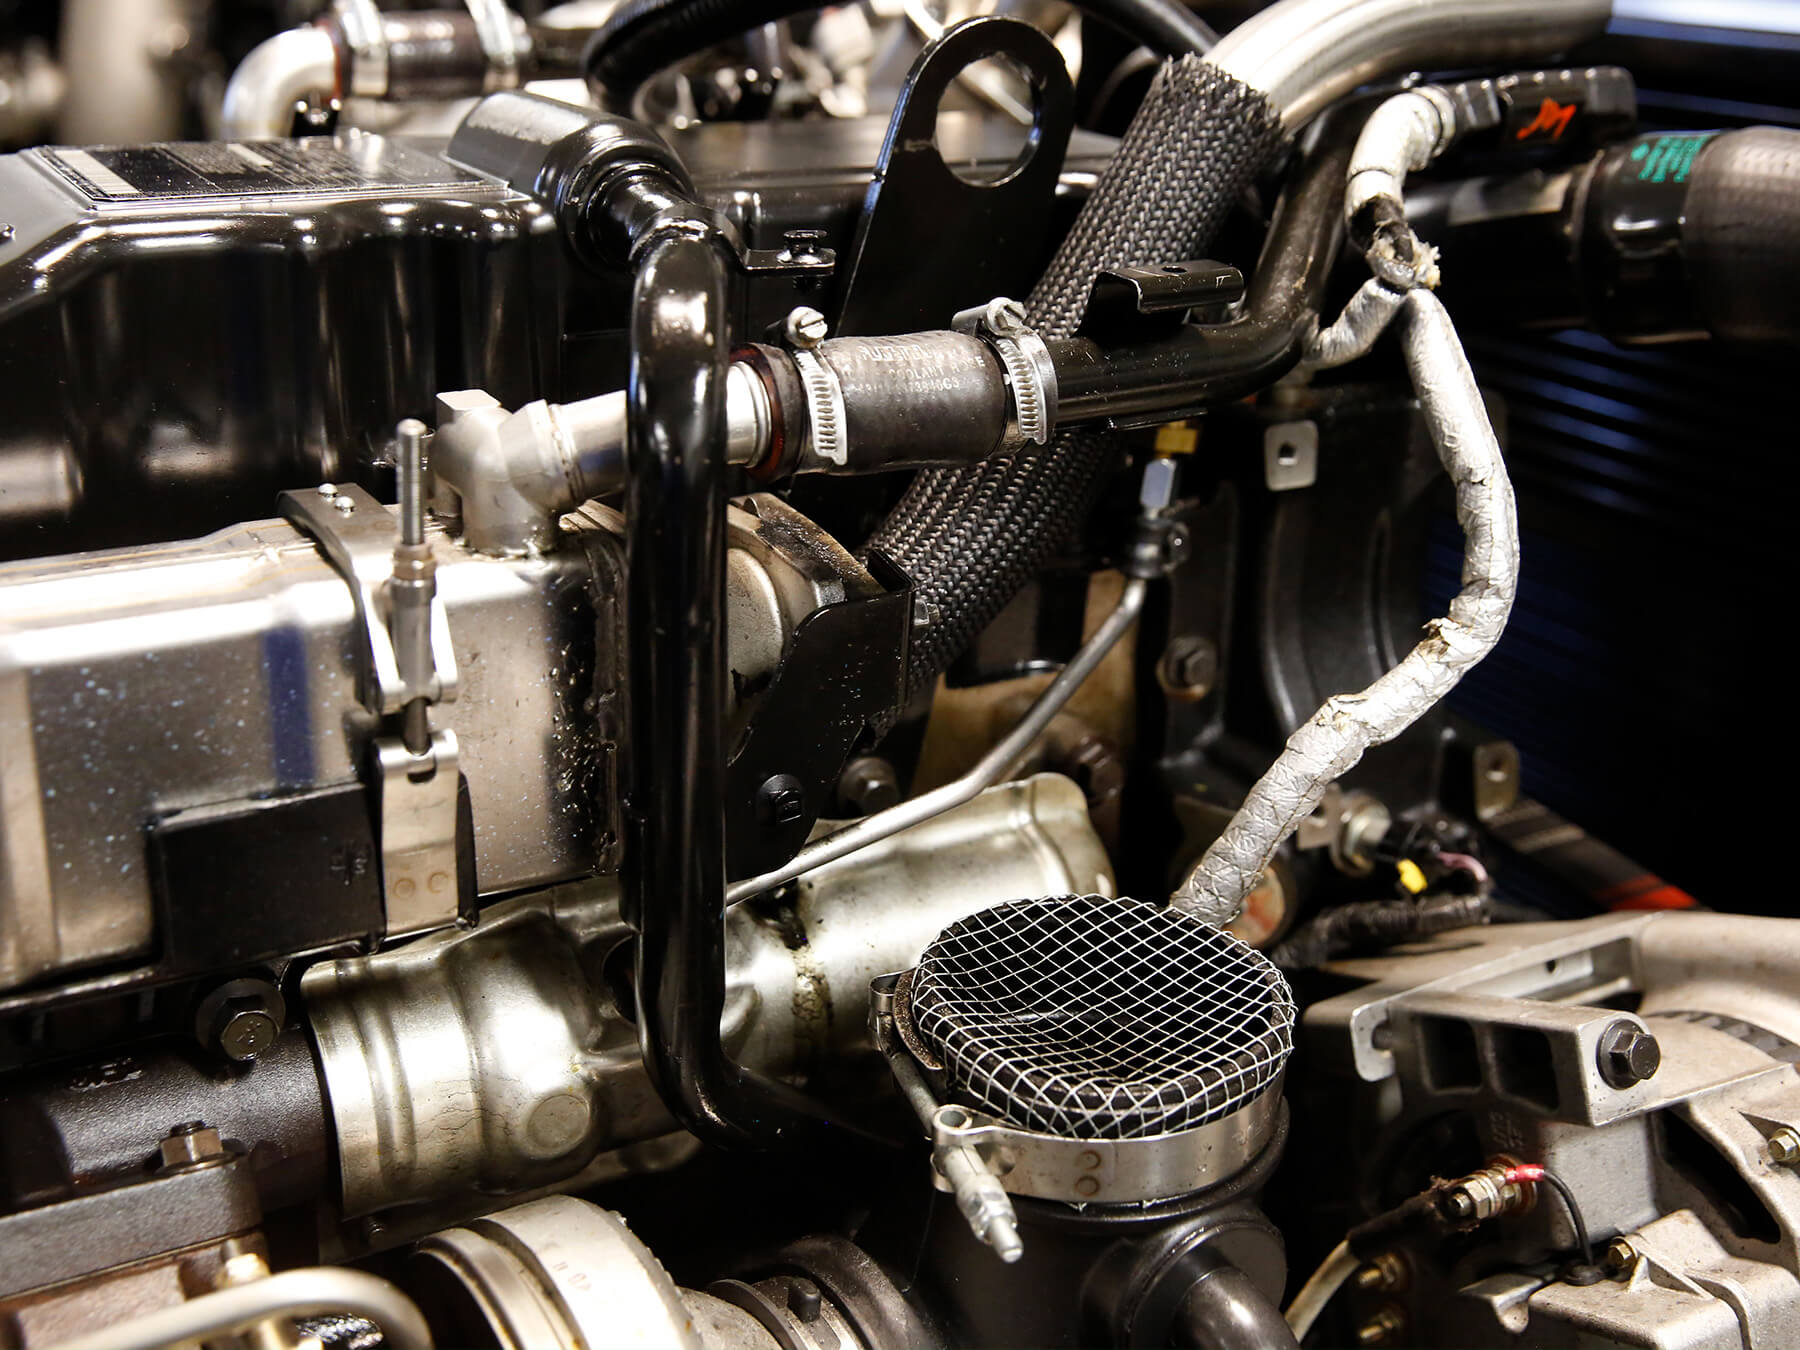 Close up photo of a Diesel engine